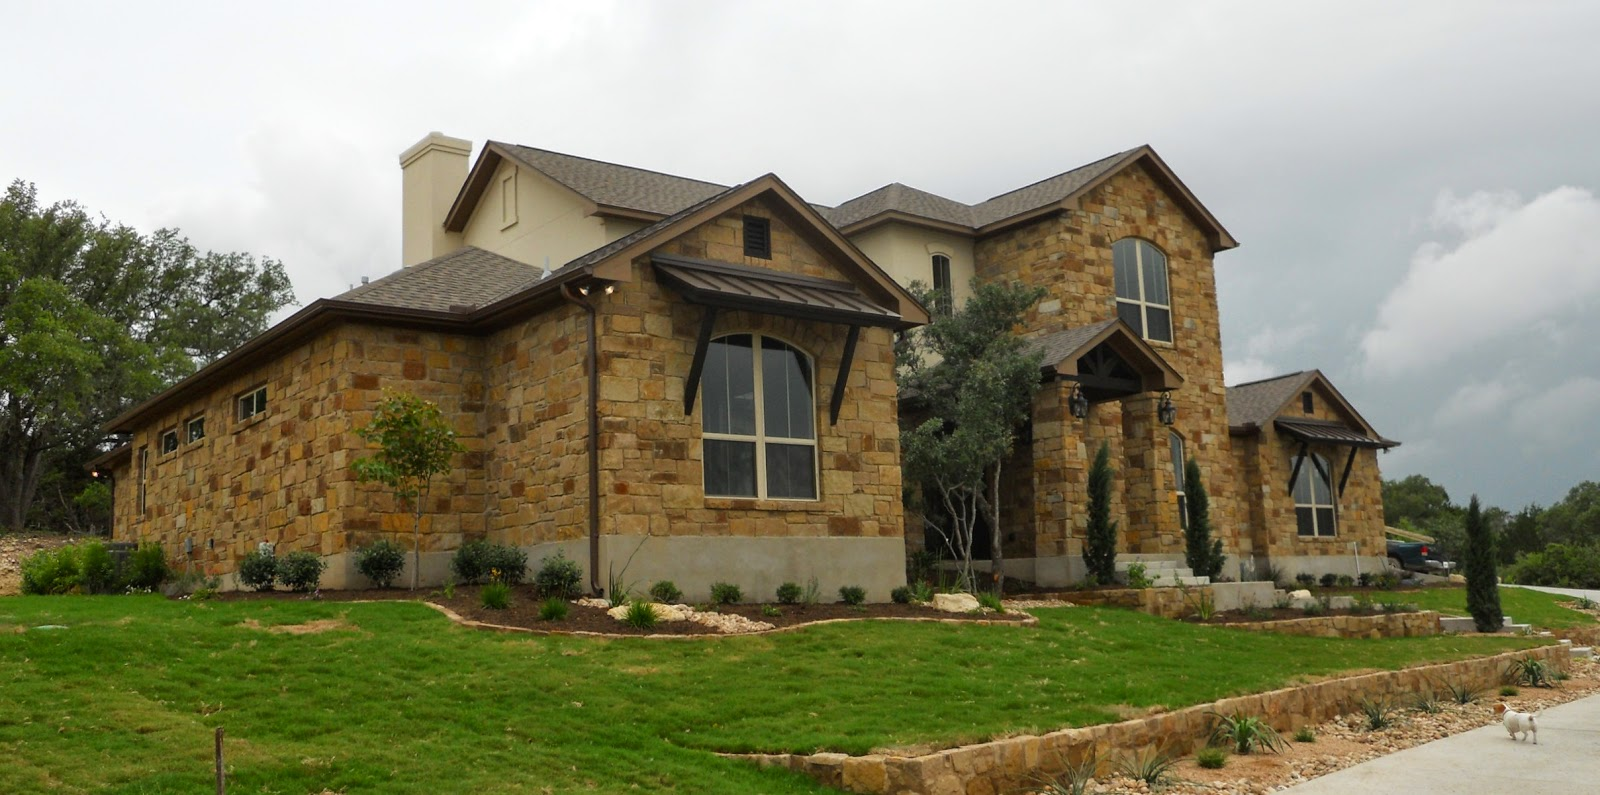 Rob sanders designer custom home remodel design for Texas hill country homes